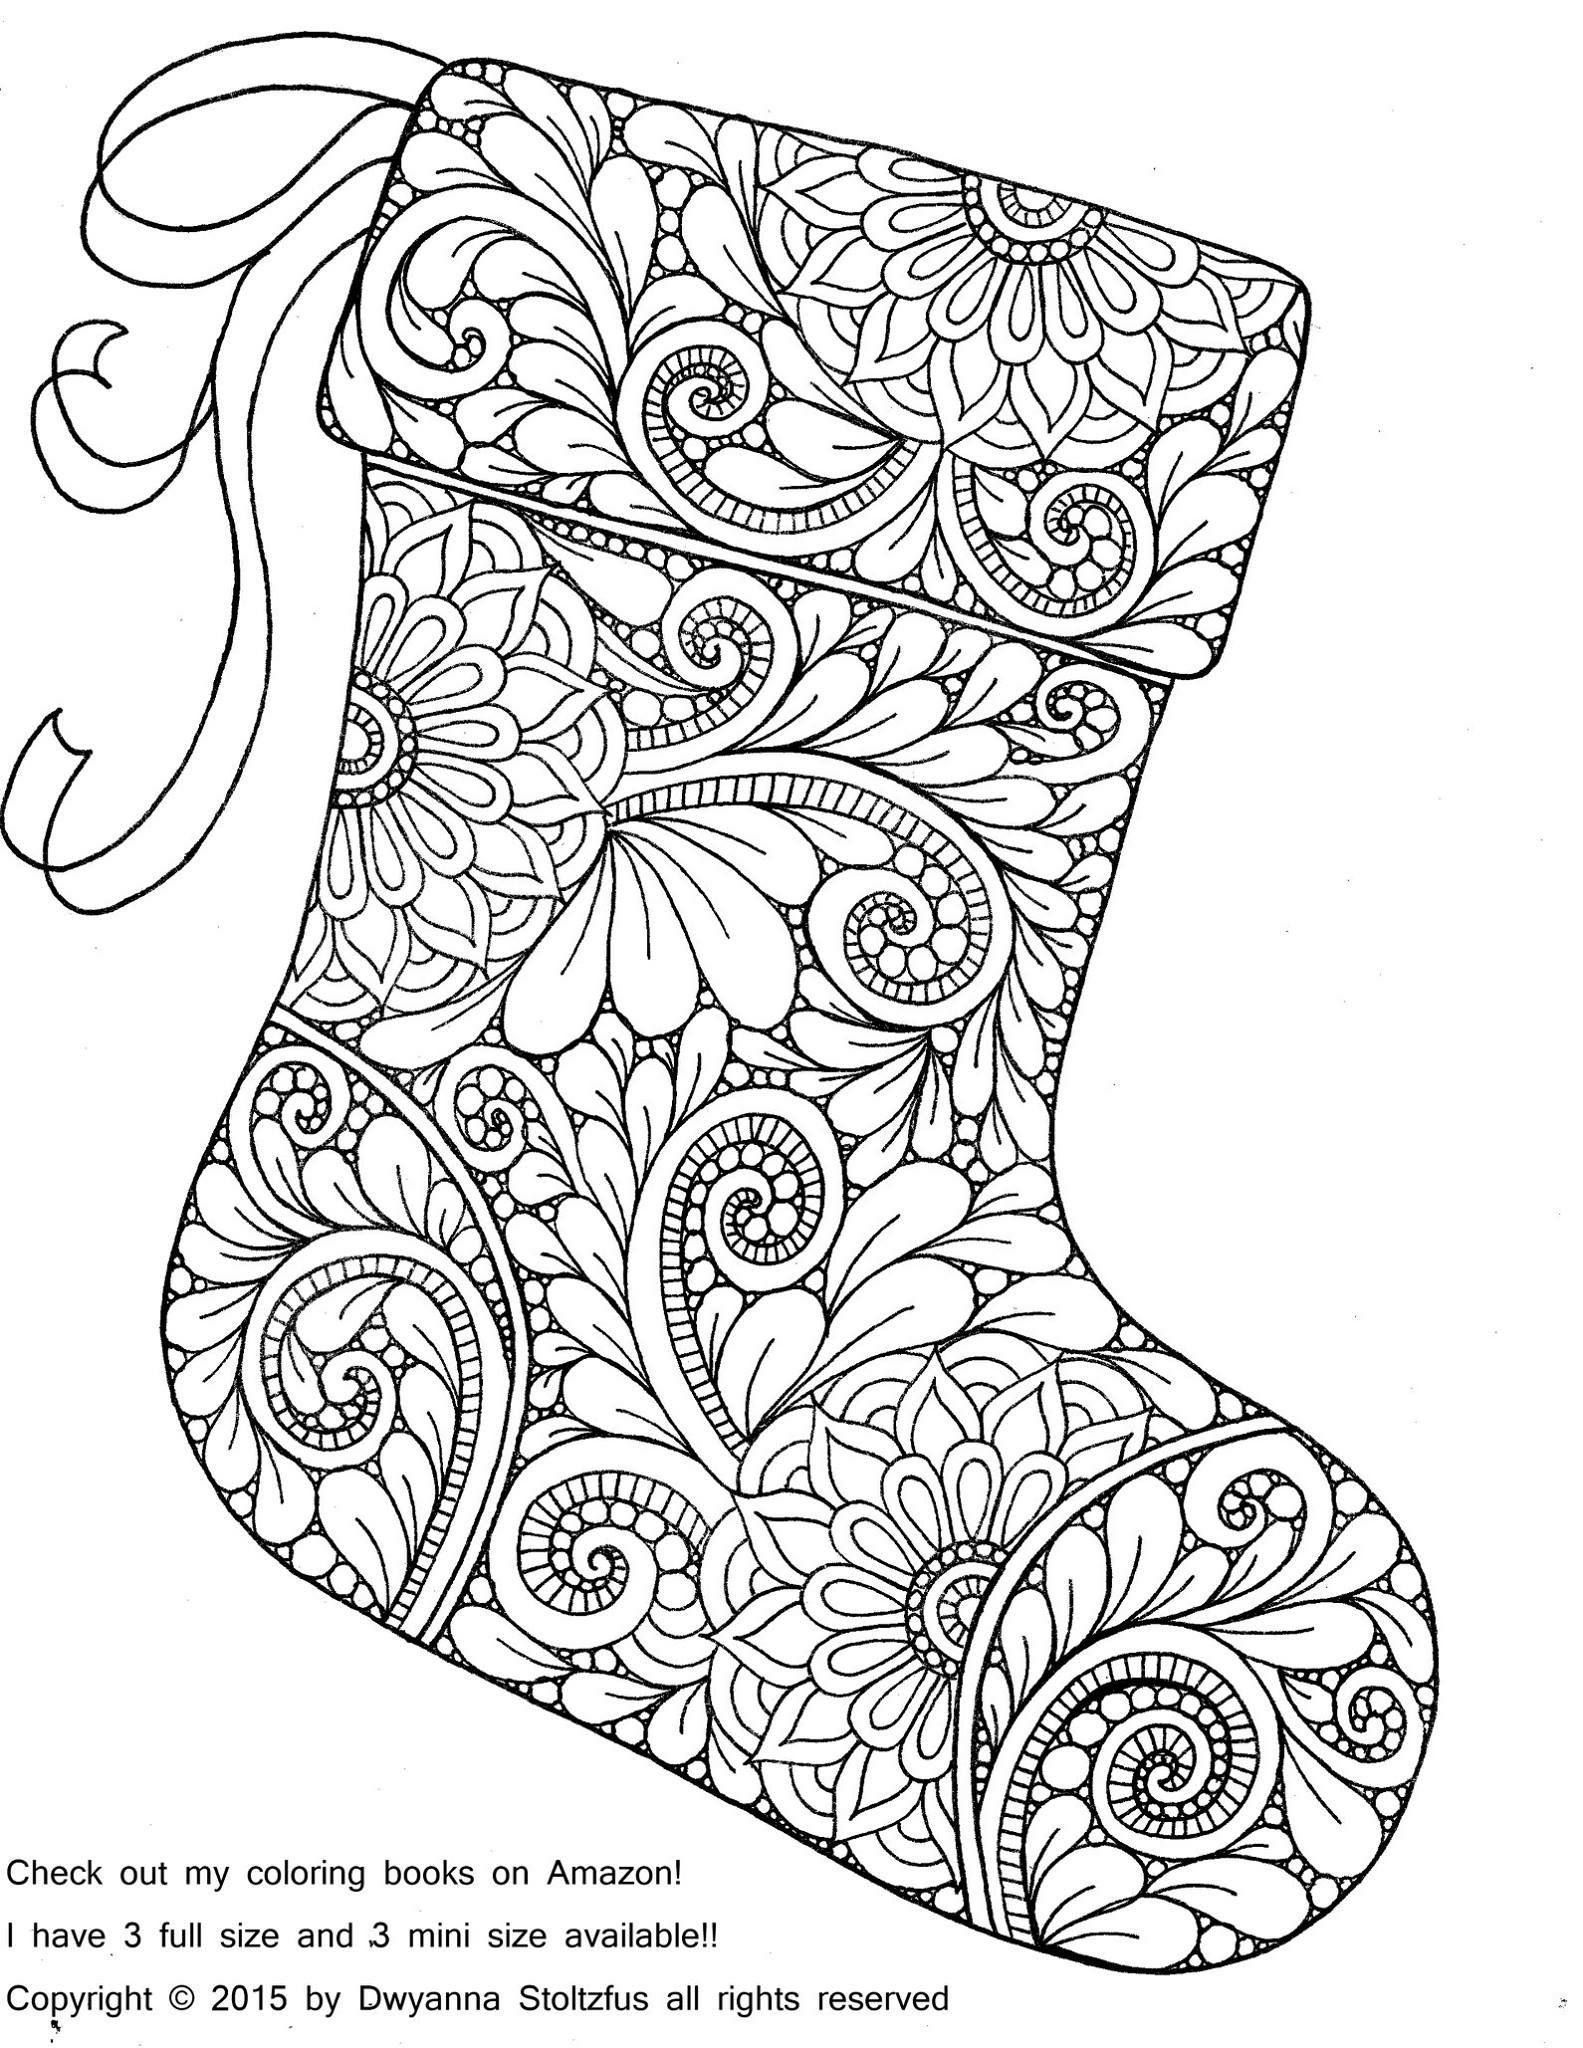 Santa Socks Coloring With Pin By Aimee Crihfield On I M Makin This Pinterest